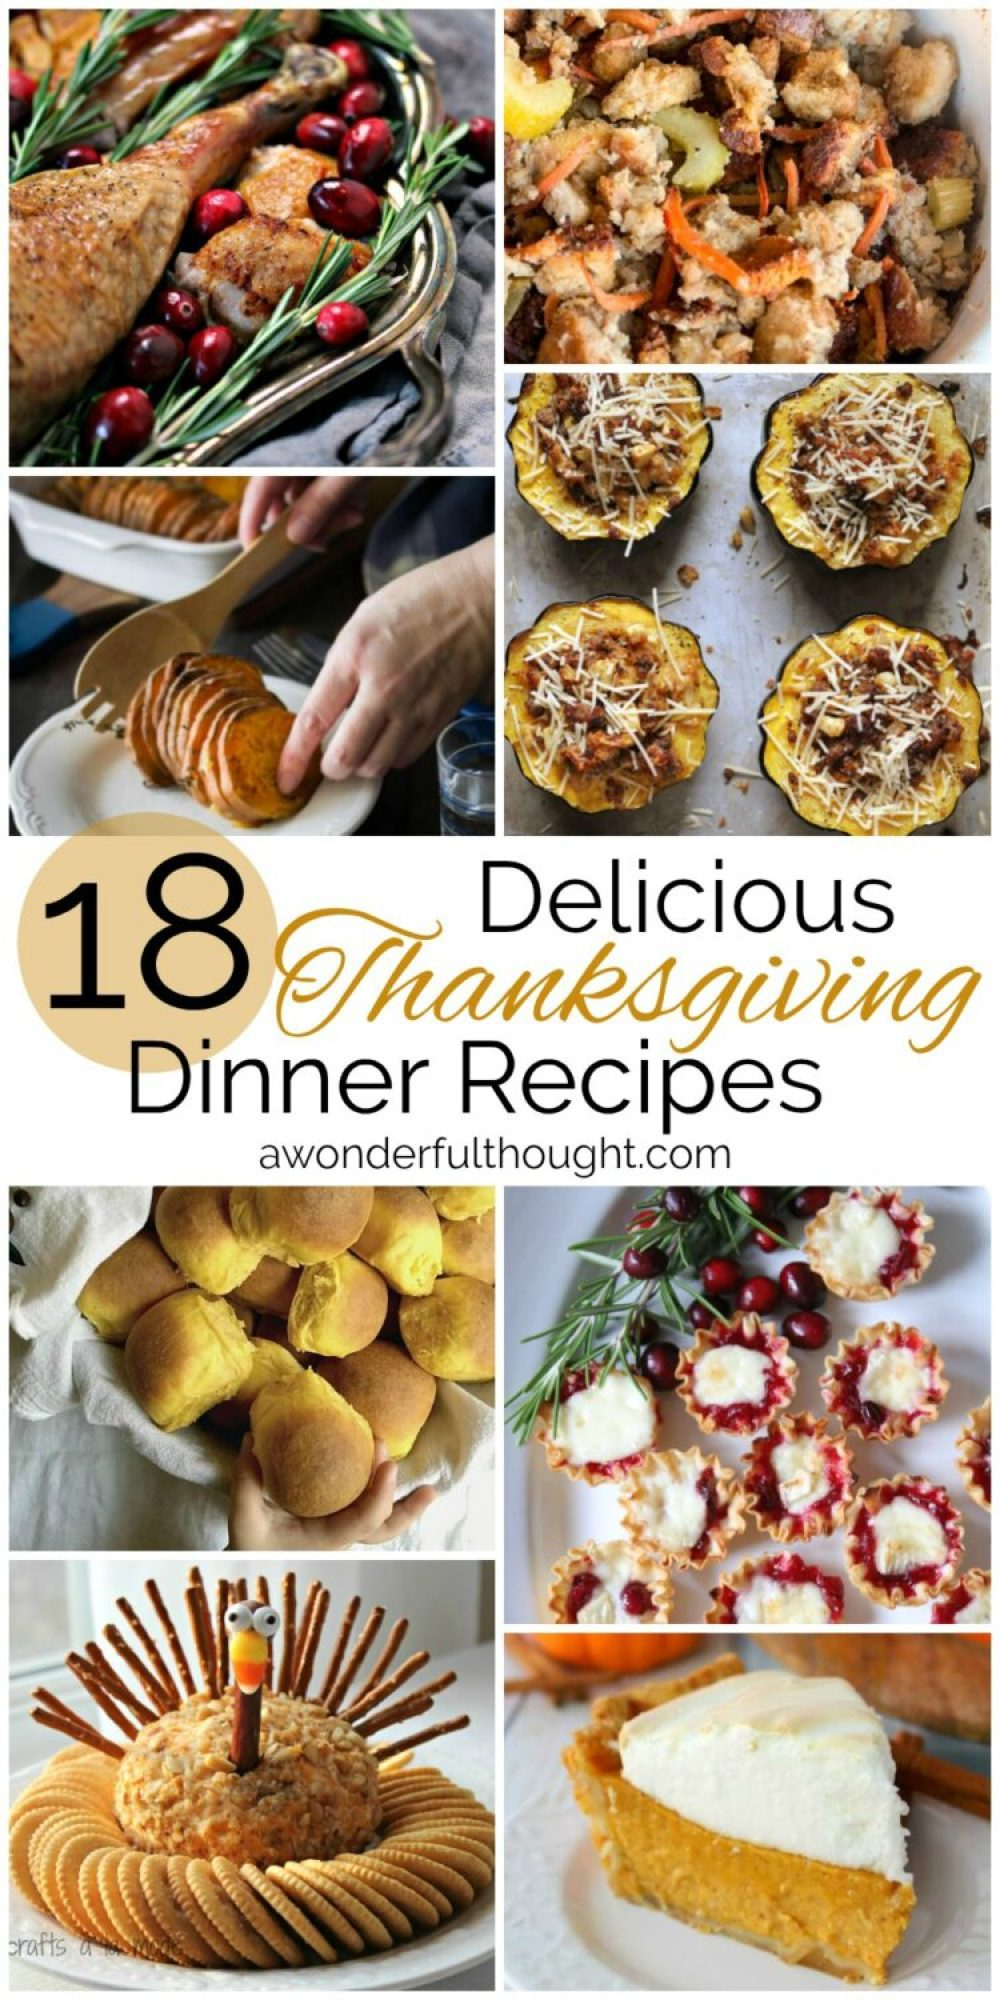 Thanksgiving Dinner Recipes | awonderfulthought.com